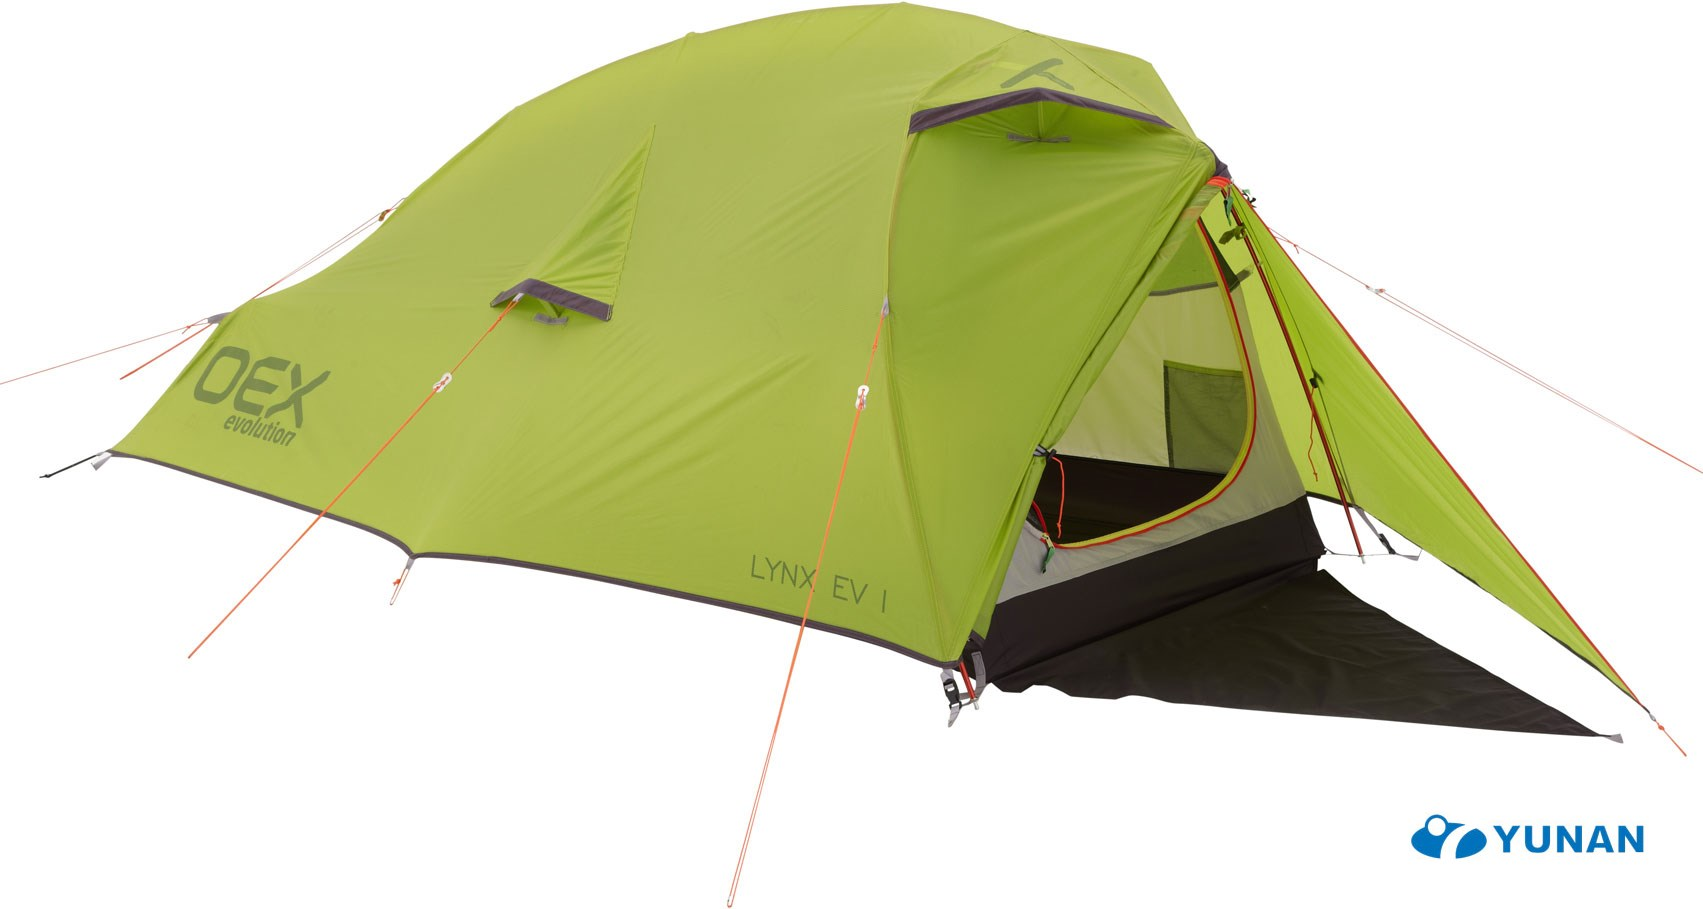 Lynx EV I Backpacking Tent  sc 1 st  GO Outdoors & 1 u0026 2 Man Tents | Lightweight Backpacking Tent | GO Outdoors